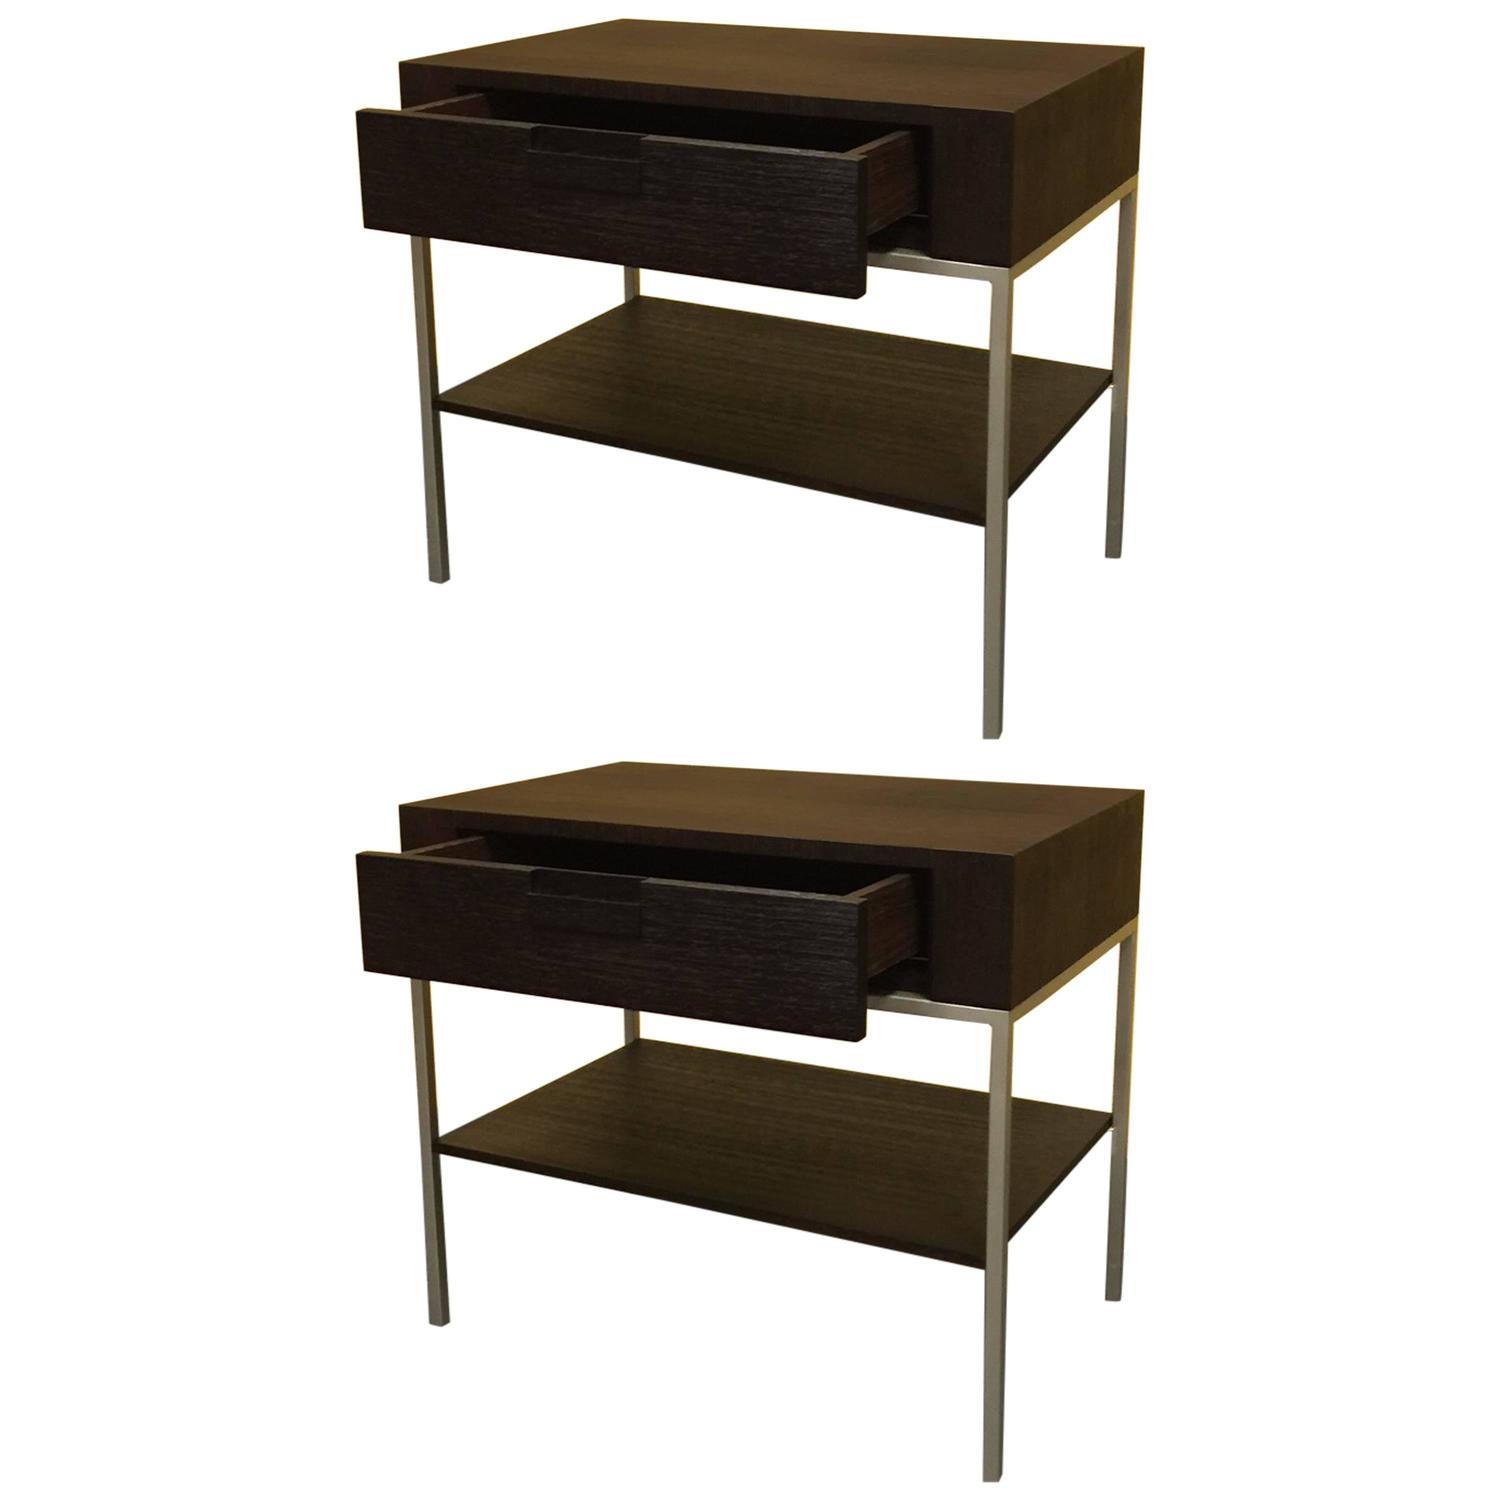 B&B Italia Maxalto Collection Nightstands Or End Tables By